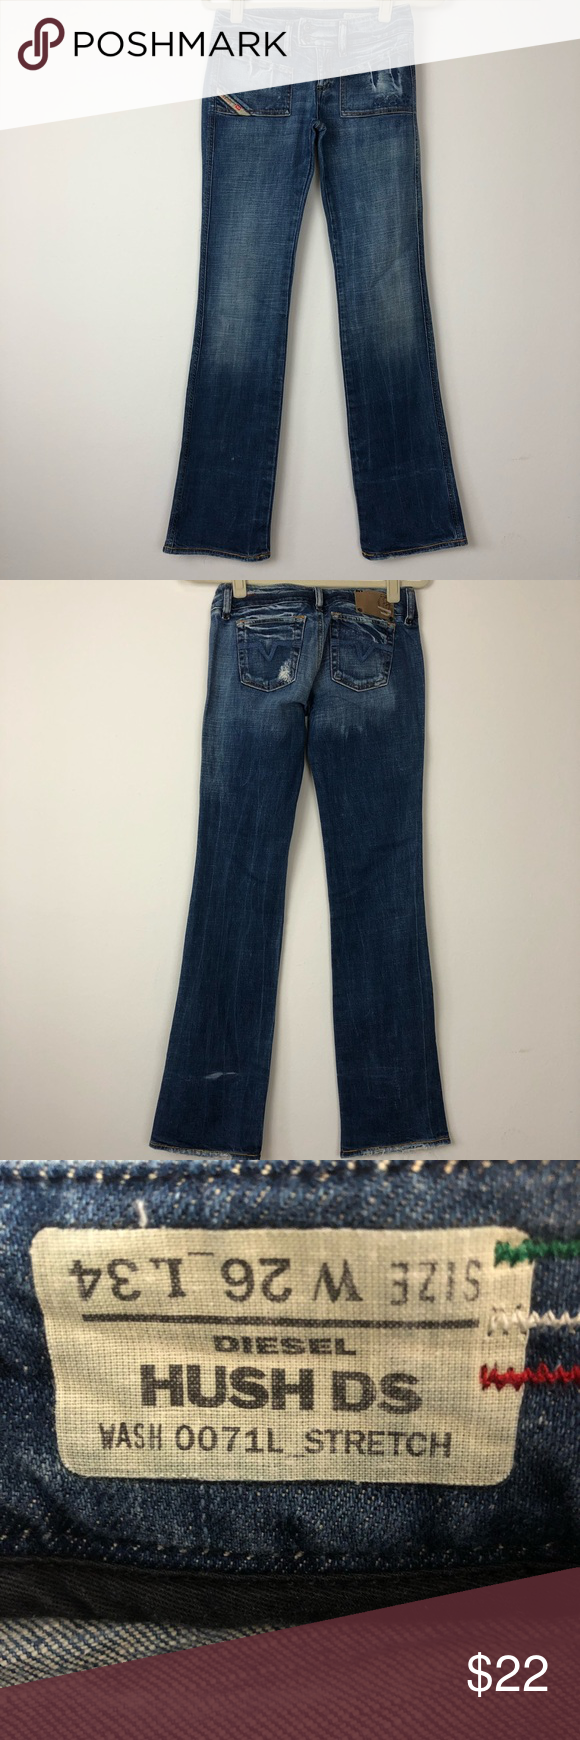 6cc54e9c368 Diesel Hush DS Jeans Low rise bootcut distressed jeans. Used in excellent  conditions no holes or stains Waist 26 Long 34 291G Diesel Jeans Boot Cut